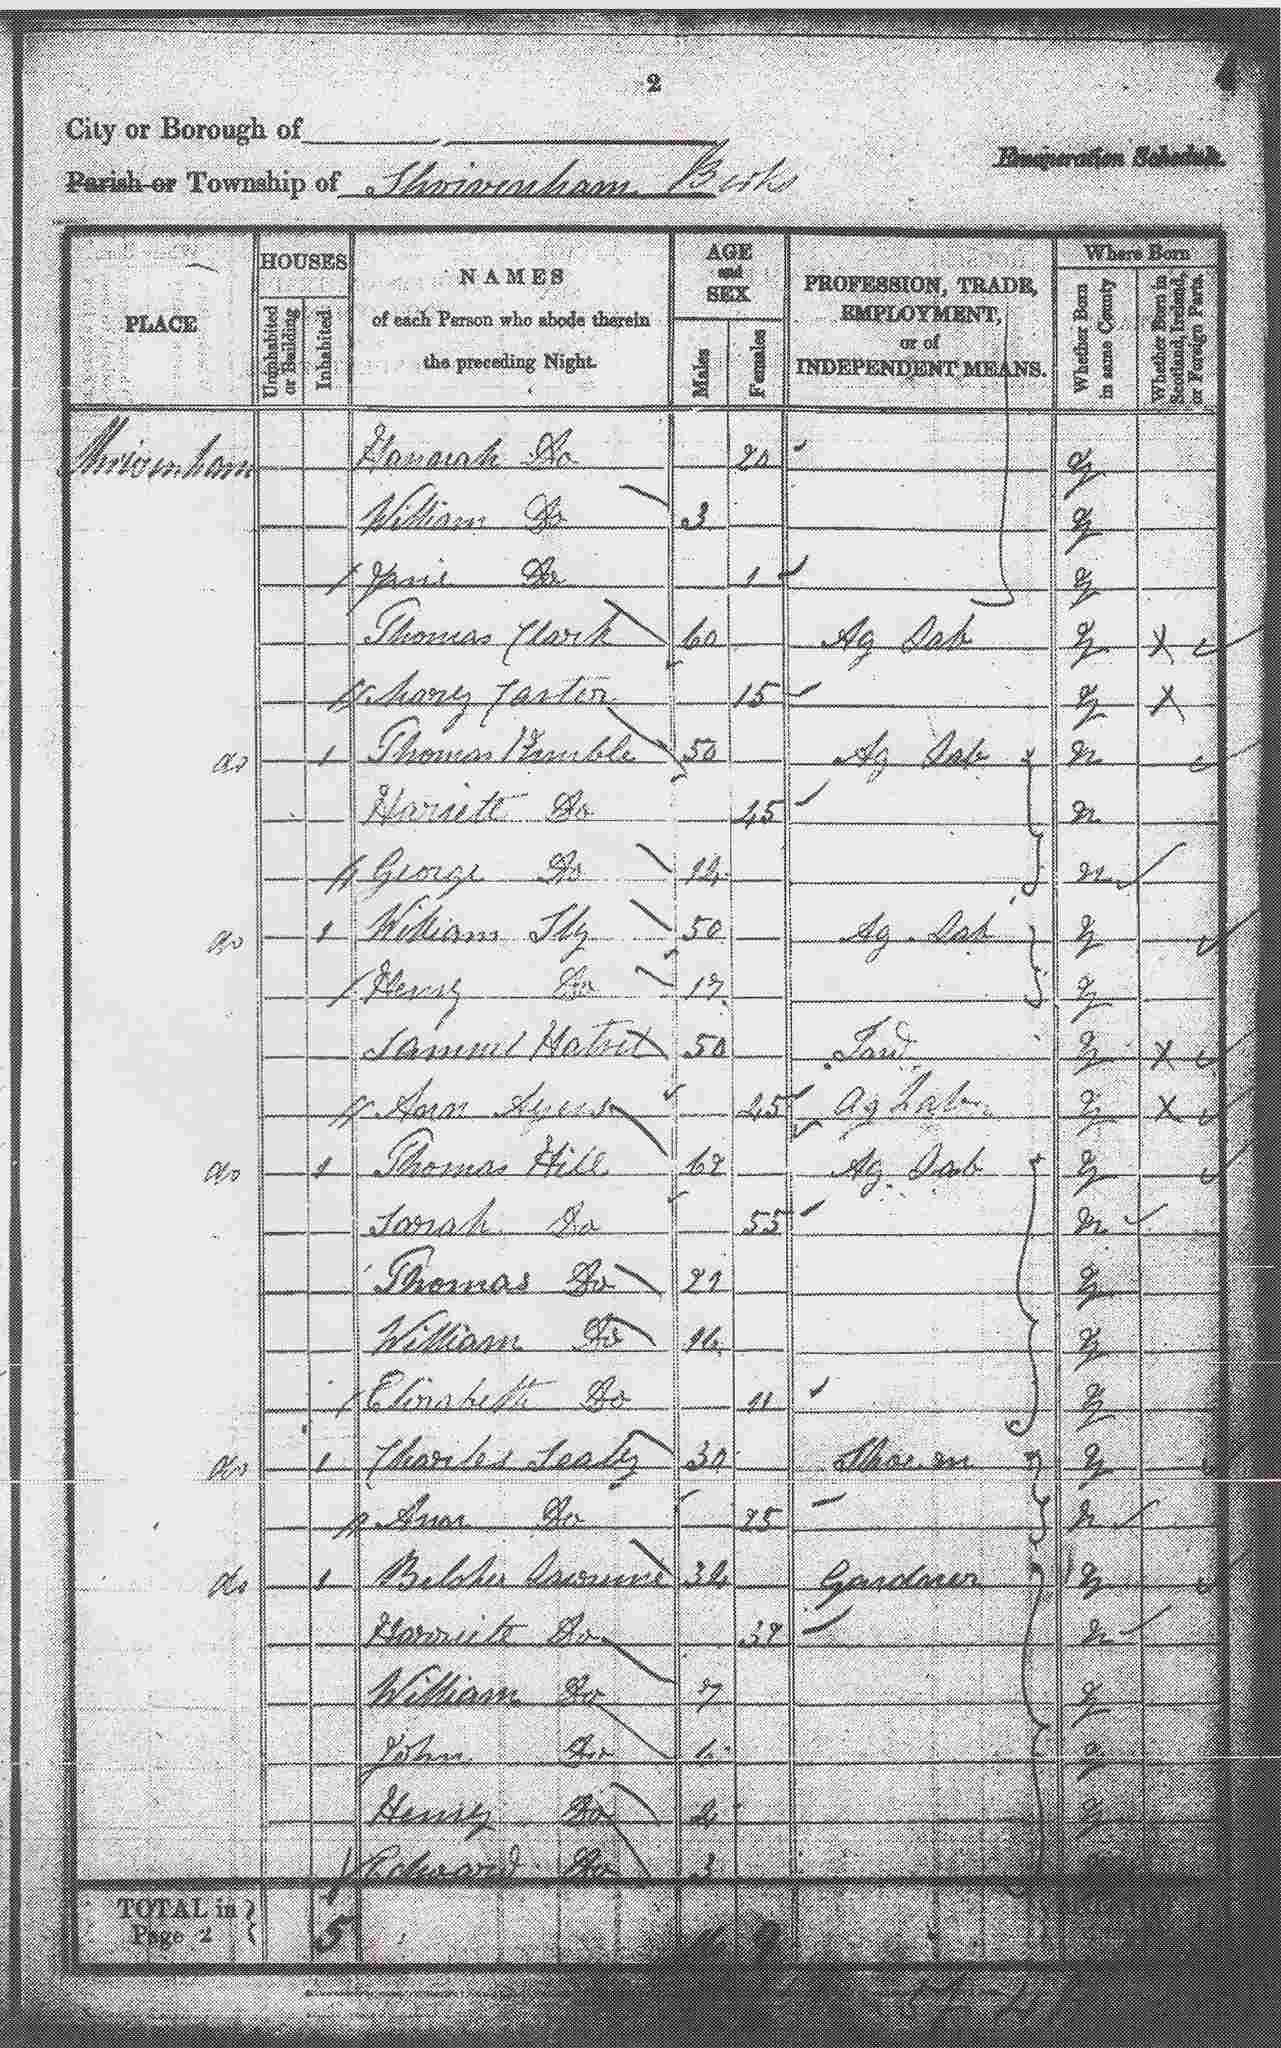 A page from the Census of 1841